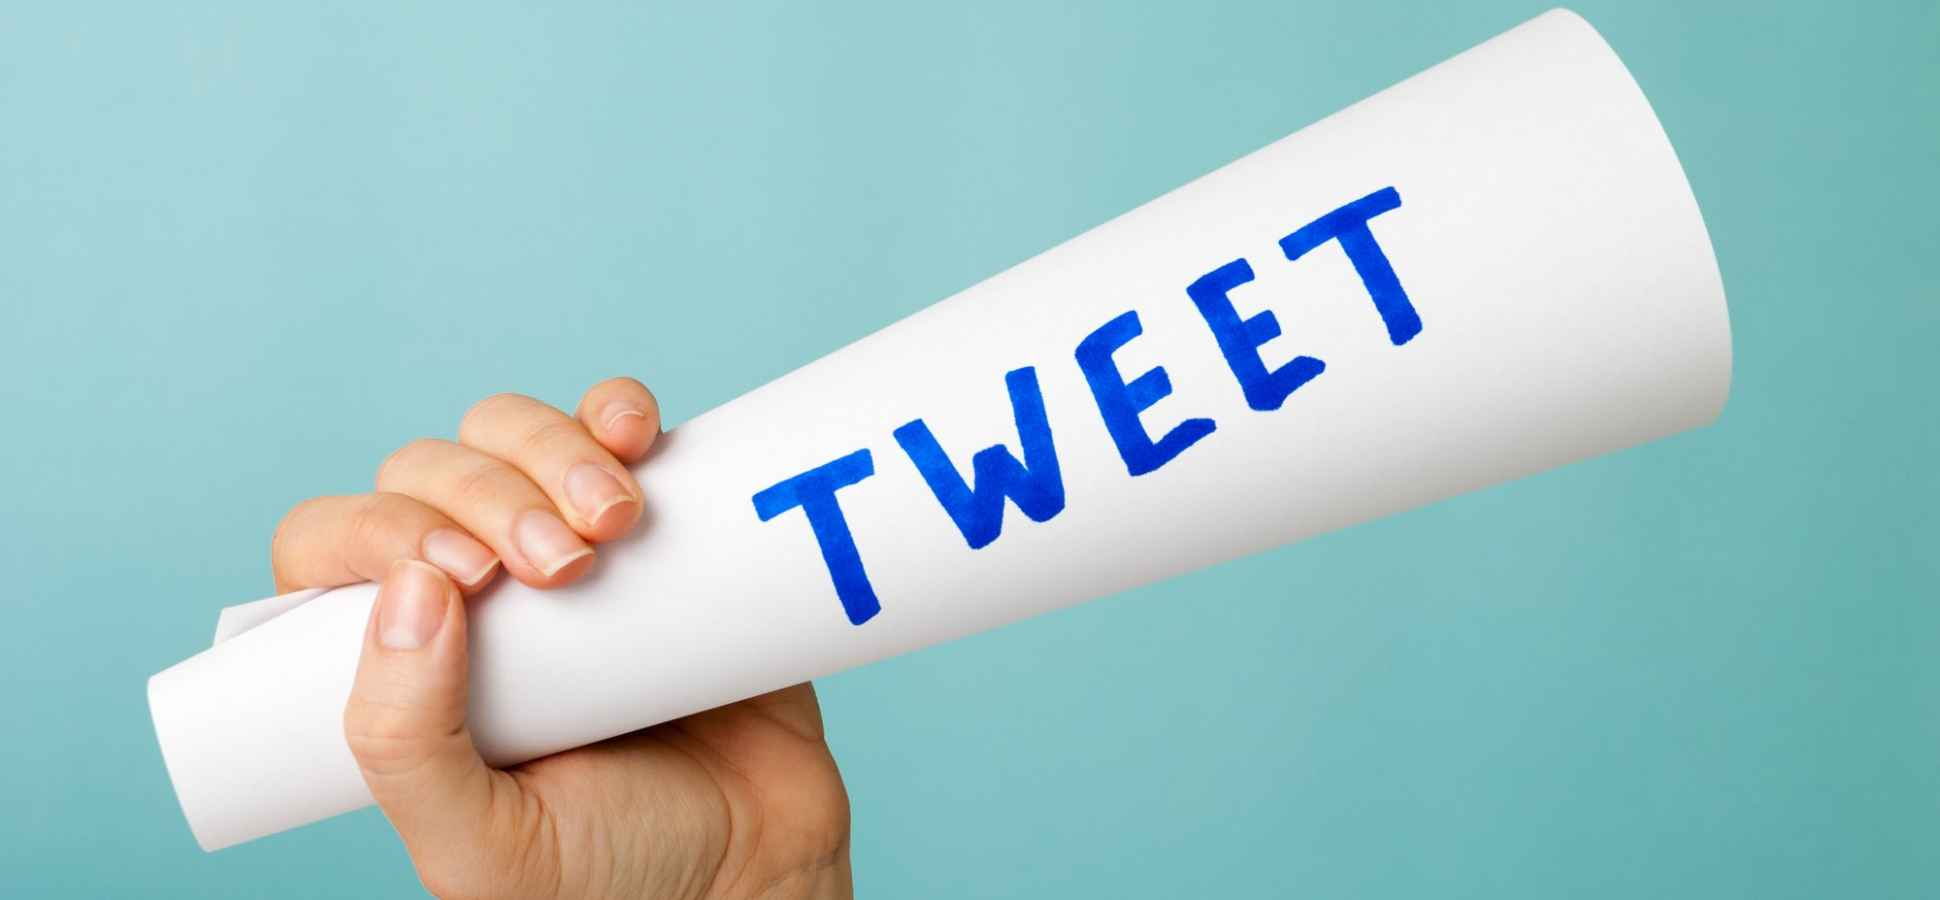 Strengthen Your Brand One Tweet at a Time